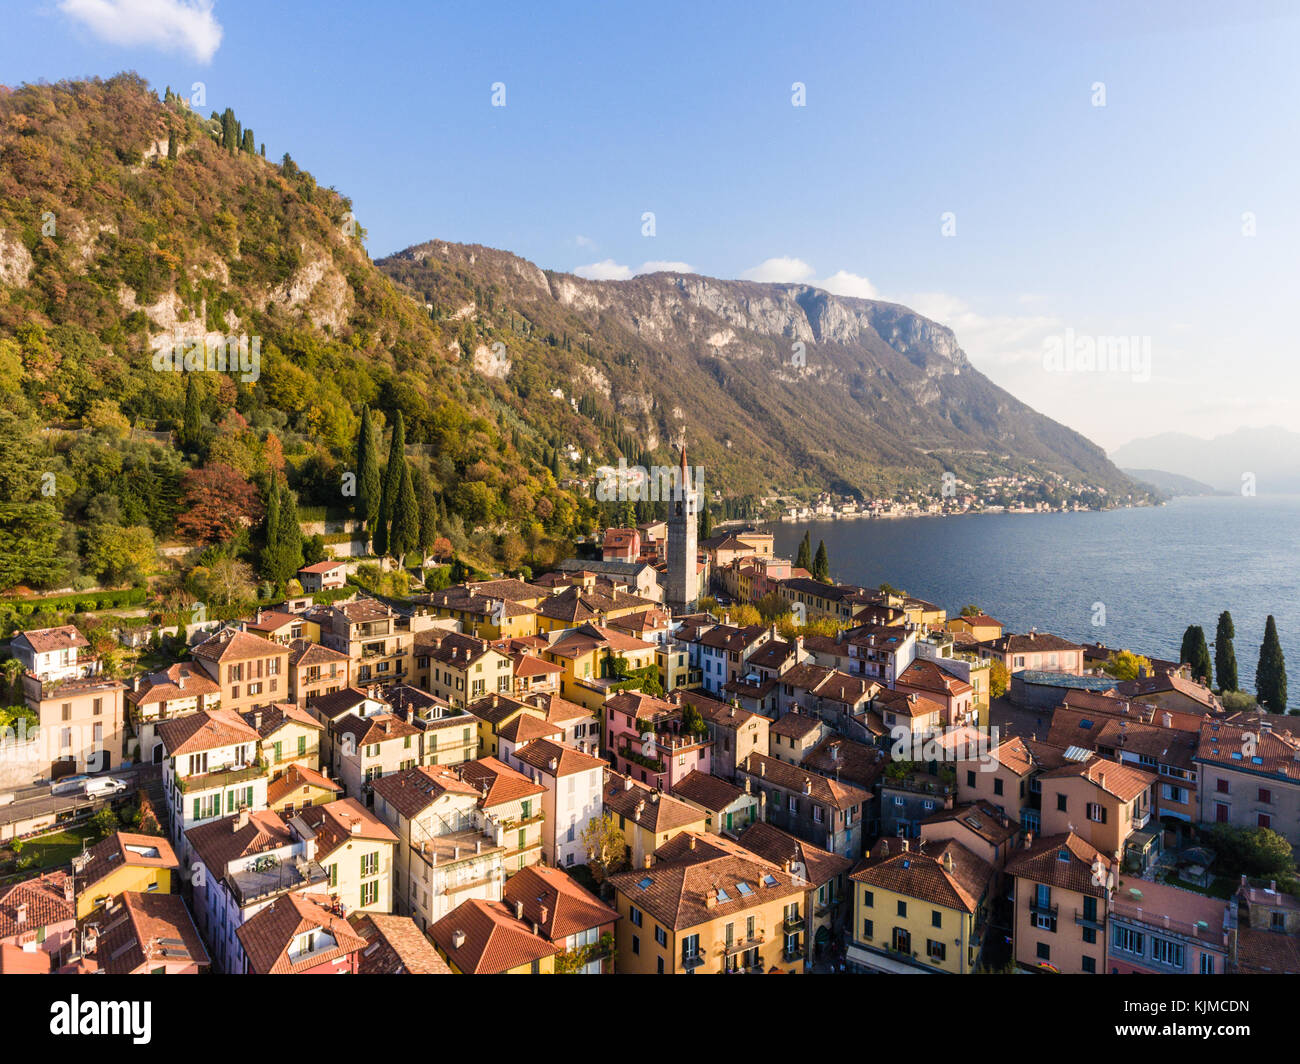 Typical houses of Varenna village, houses colourful and roofs, Aerial view from a drone. Lake of Como in Italy, - Stock Image